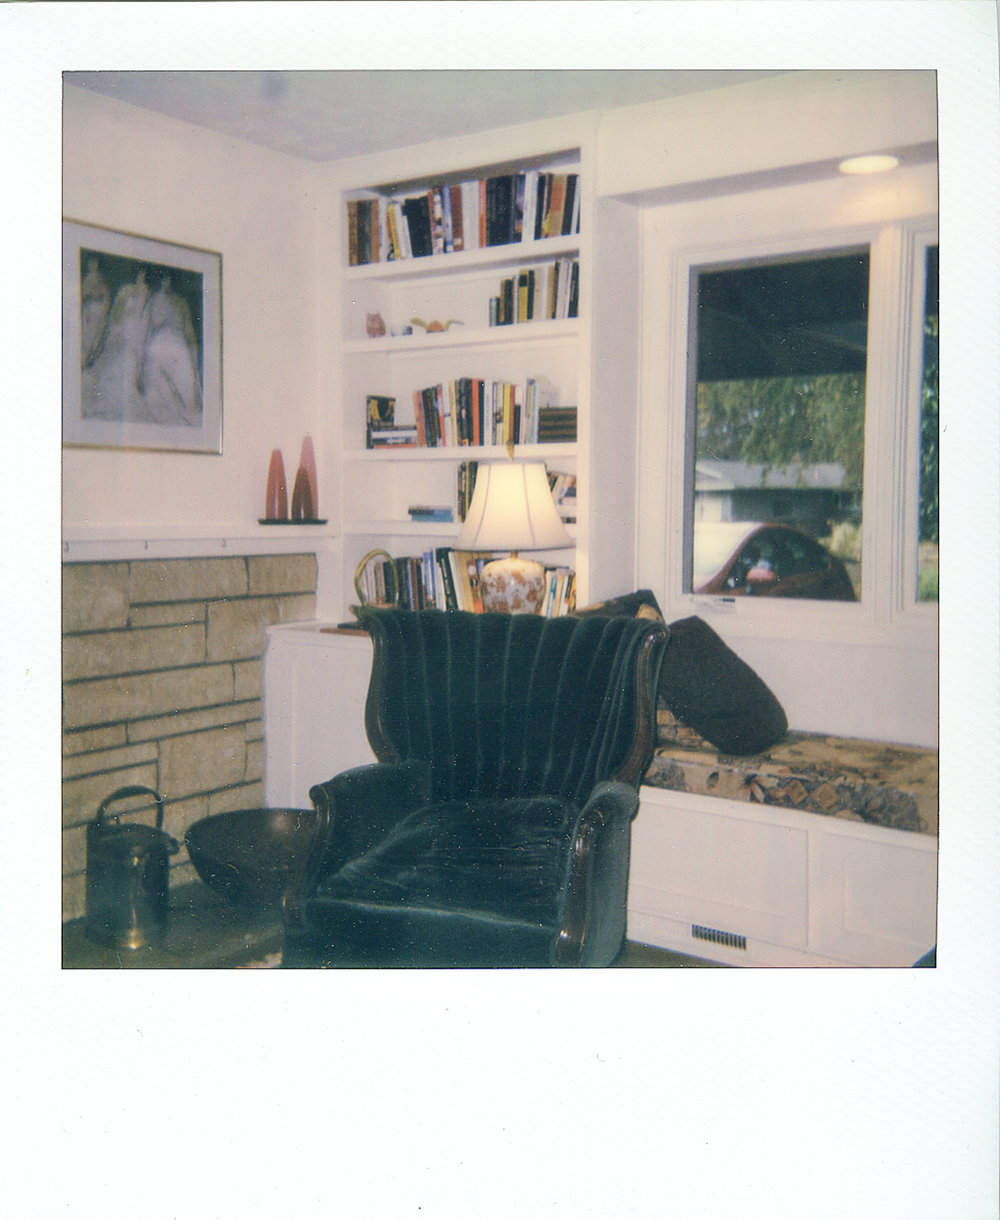 polaroid living room001.jpg